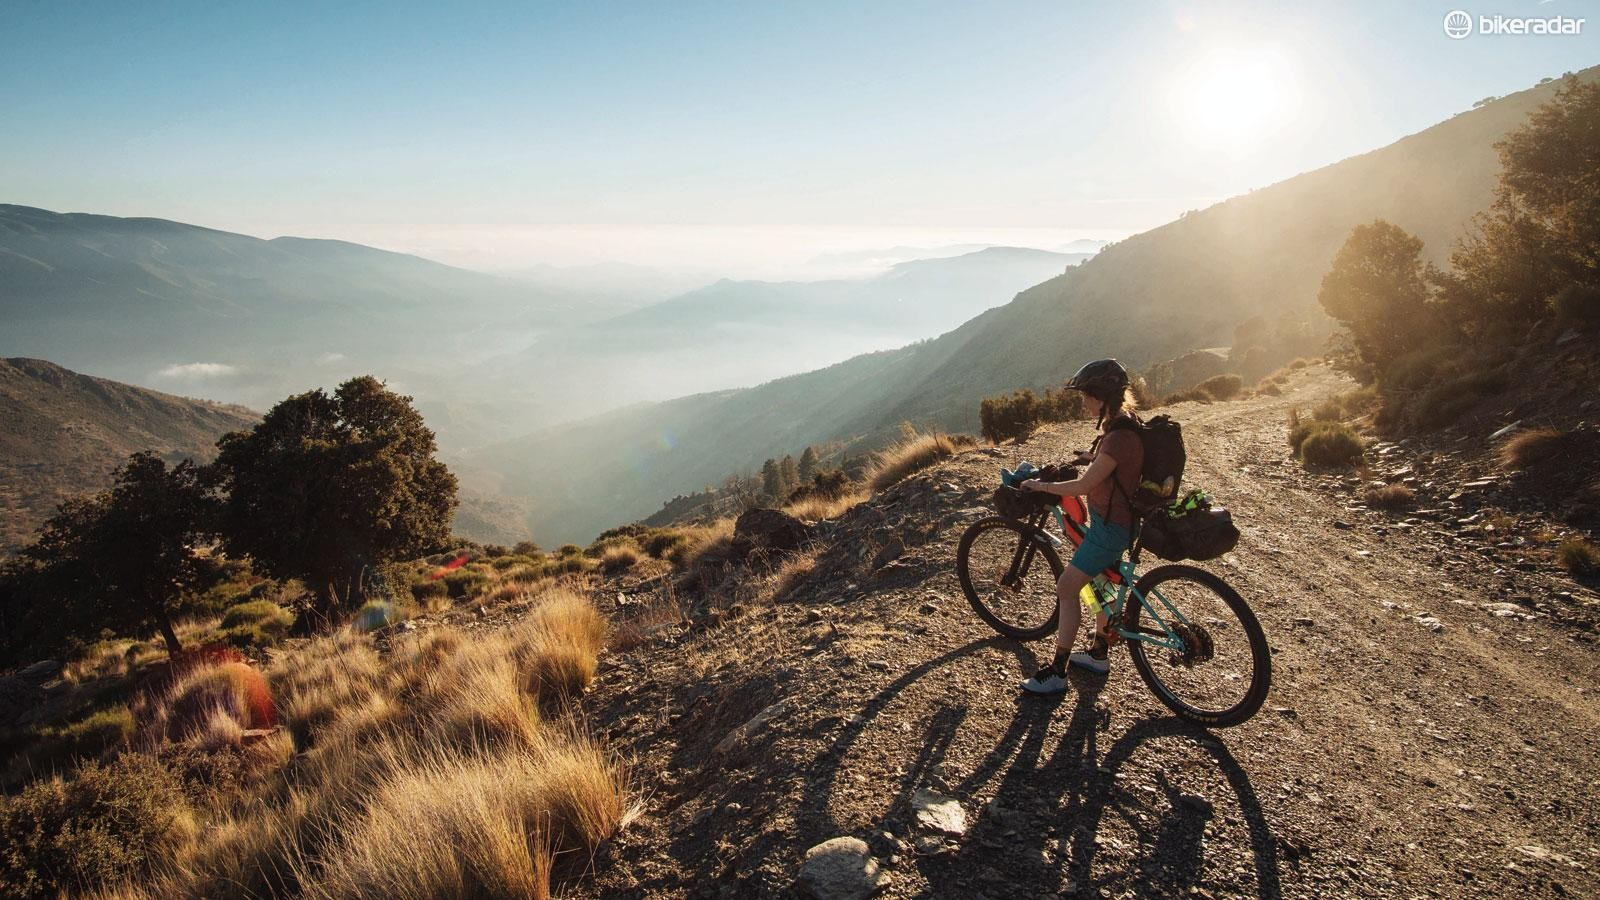 The epic Sierra Nevada mountains bring some serious sights